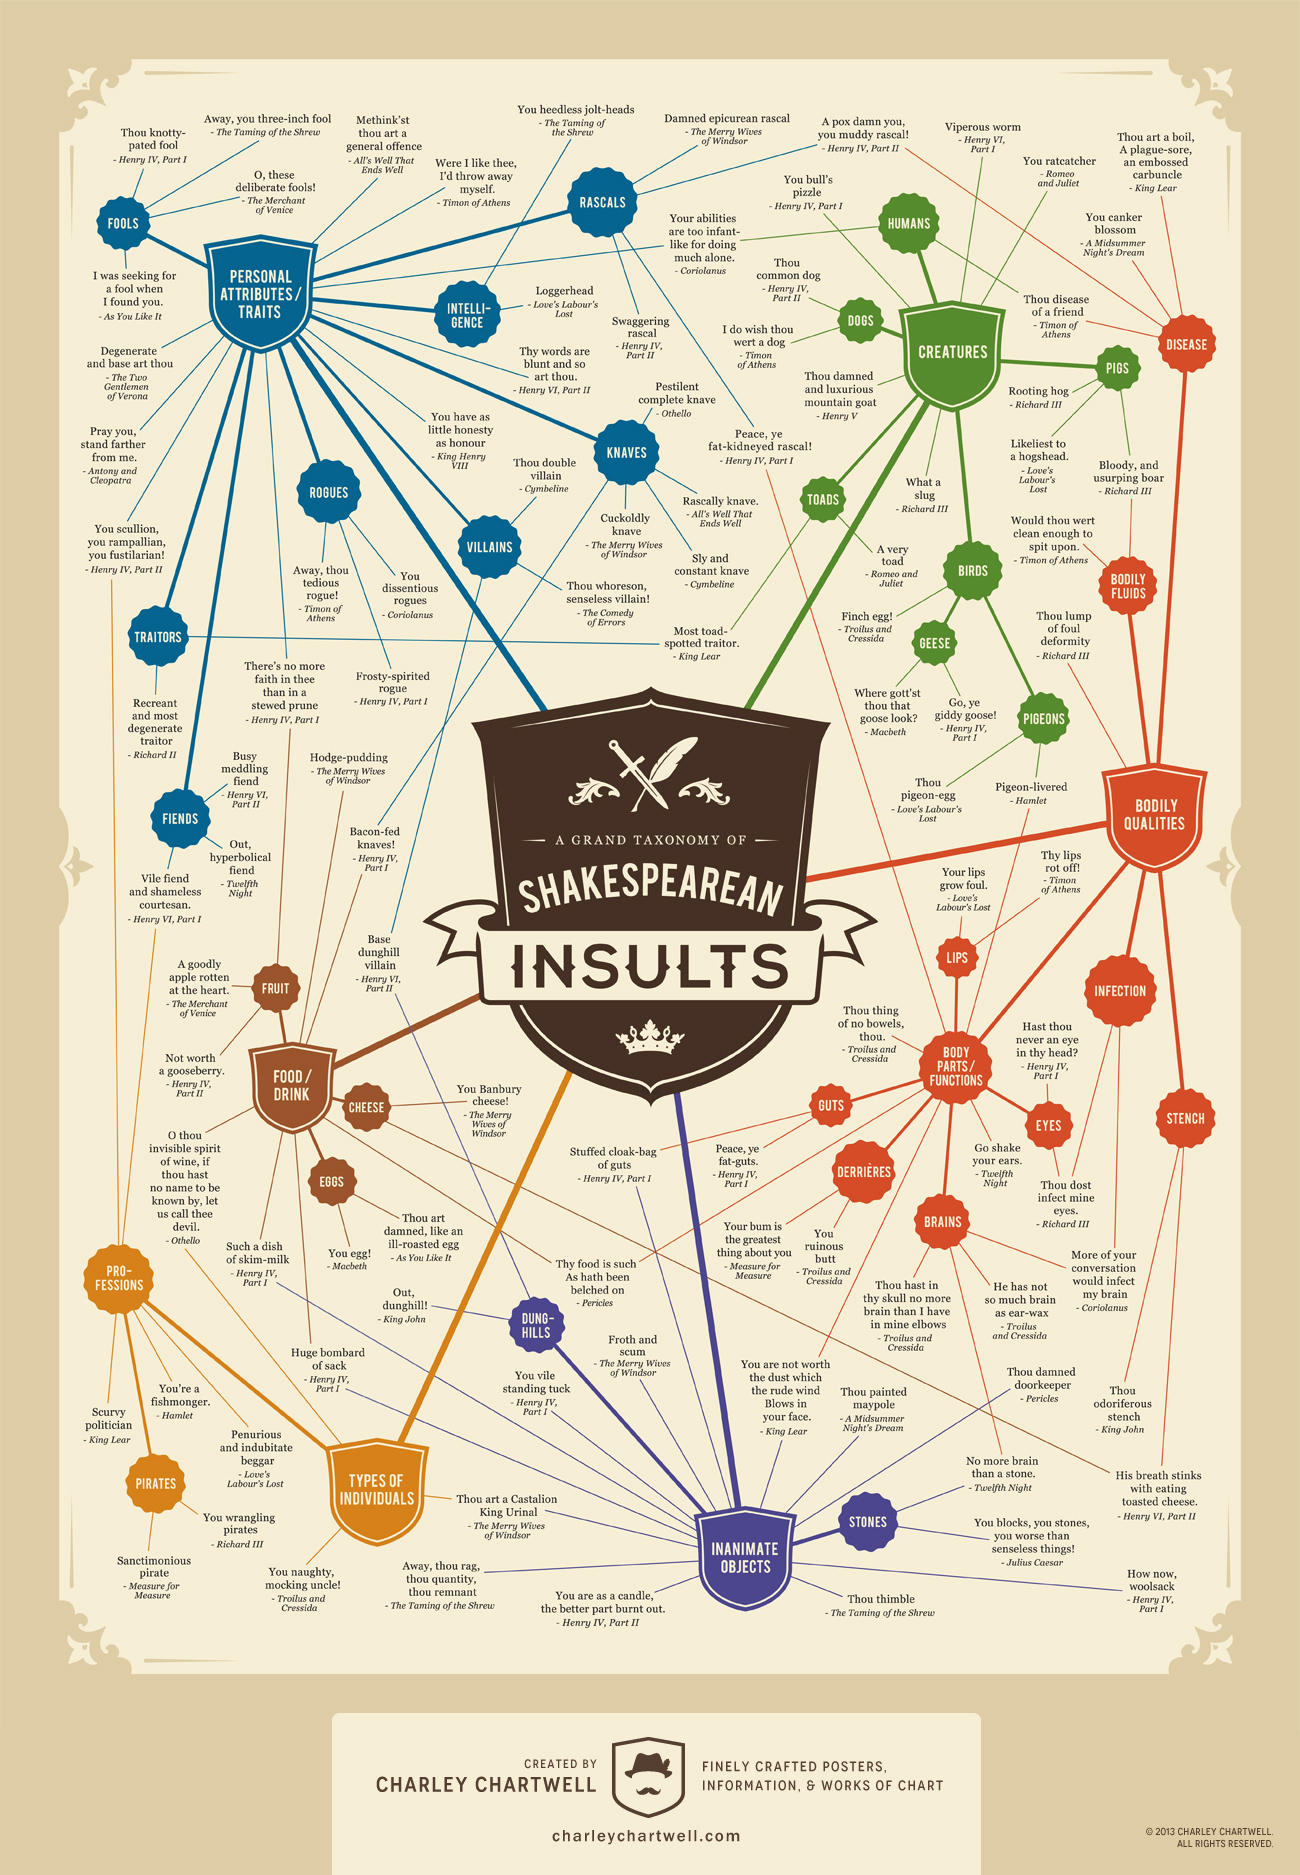 shakespearean_insults_